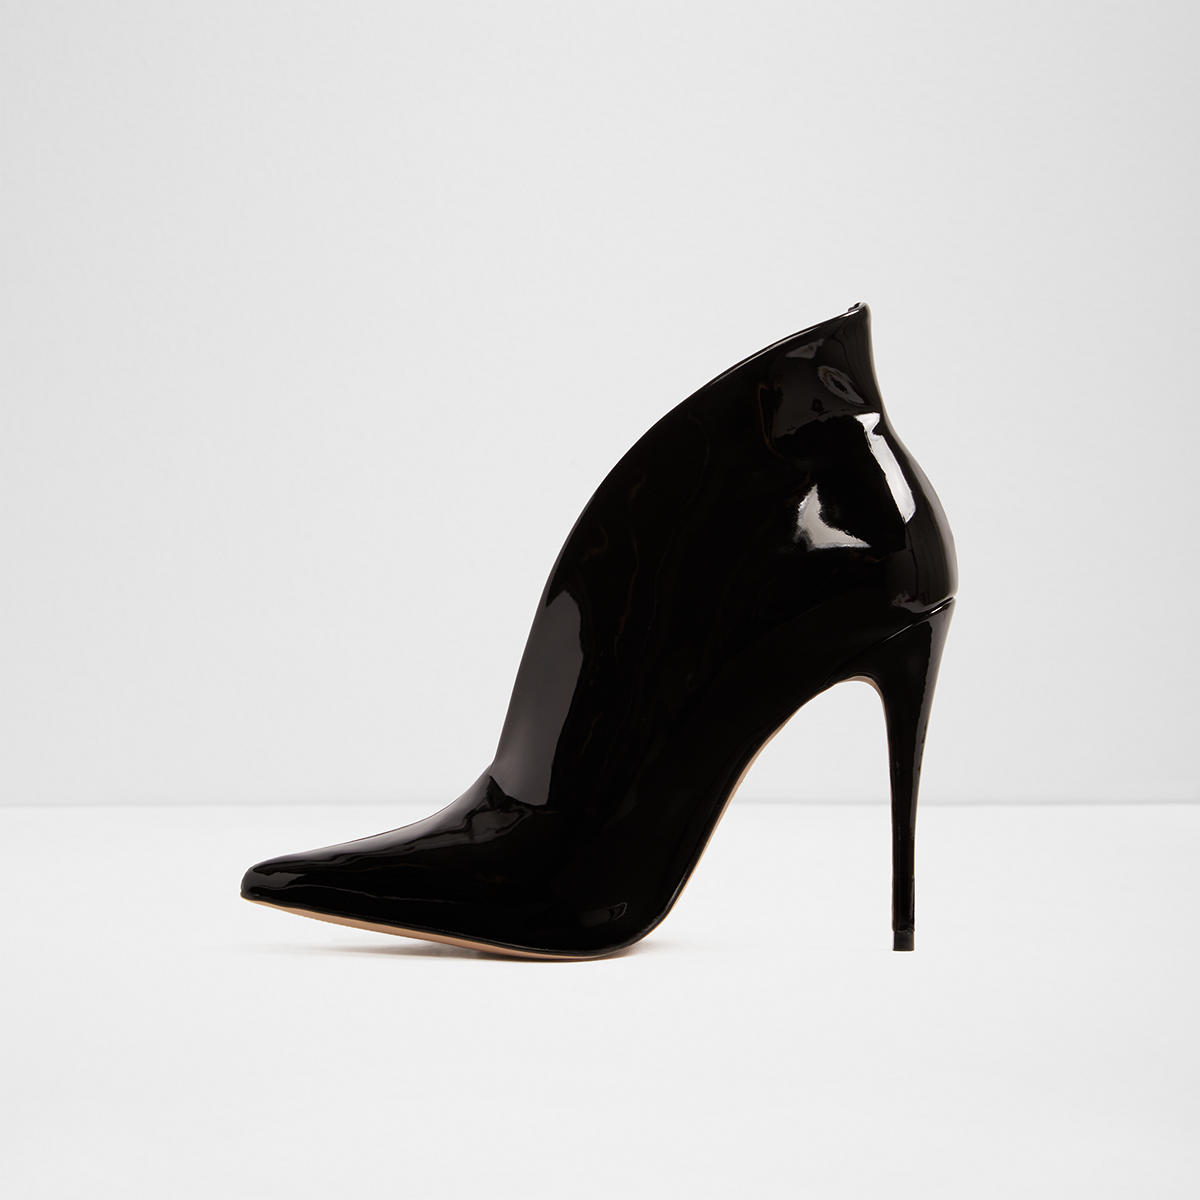 629813ca069 Melidith Black Patent Women s Pumps